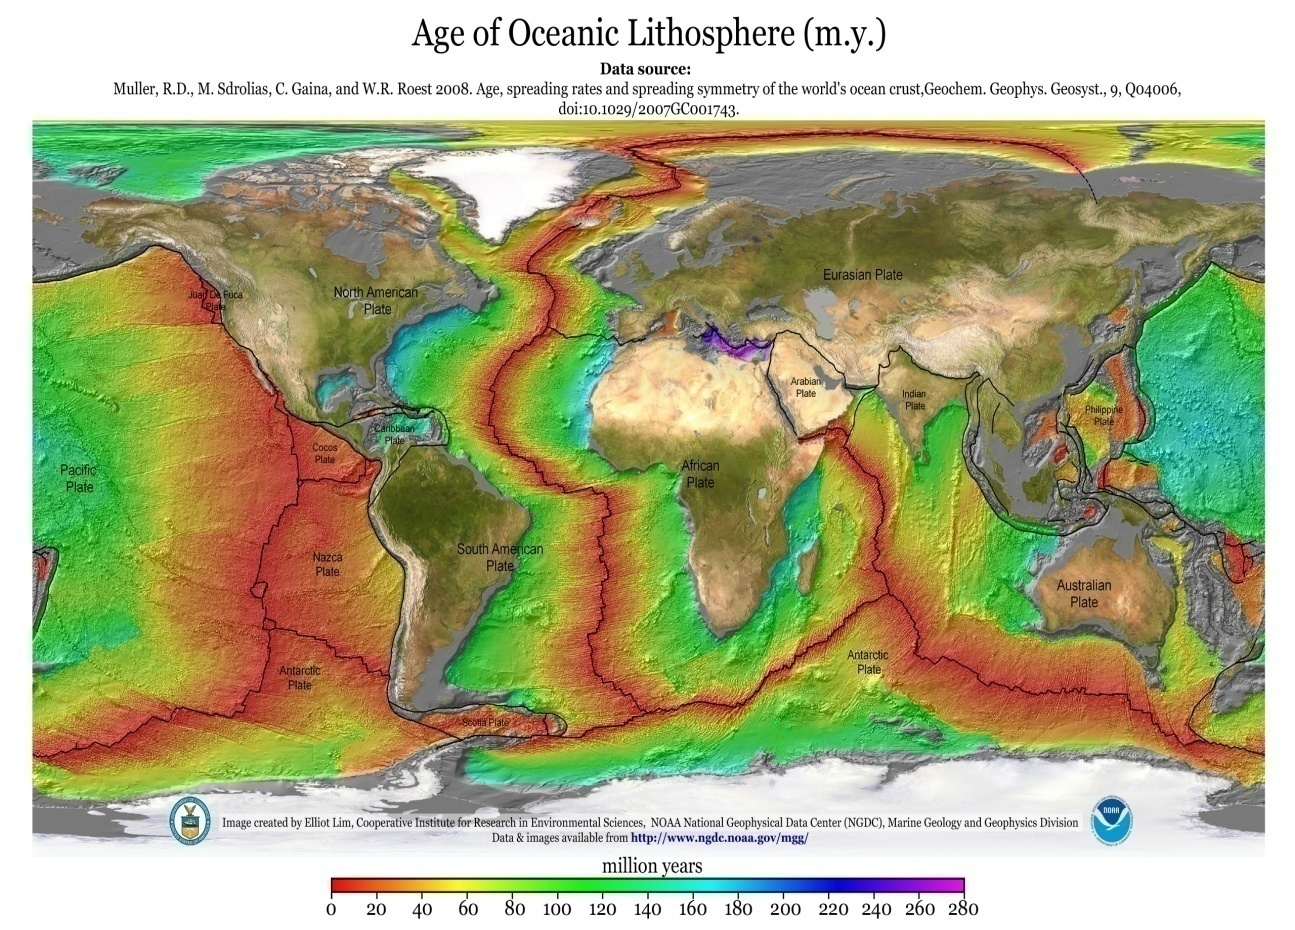 http://www.ngdc.noaa.gov/mgg/ocean_age/data/2008/ngdc-generated_images/whole_world/2008_age_of_oceans_plates.jpg